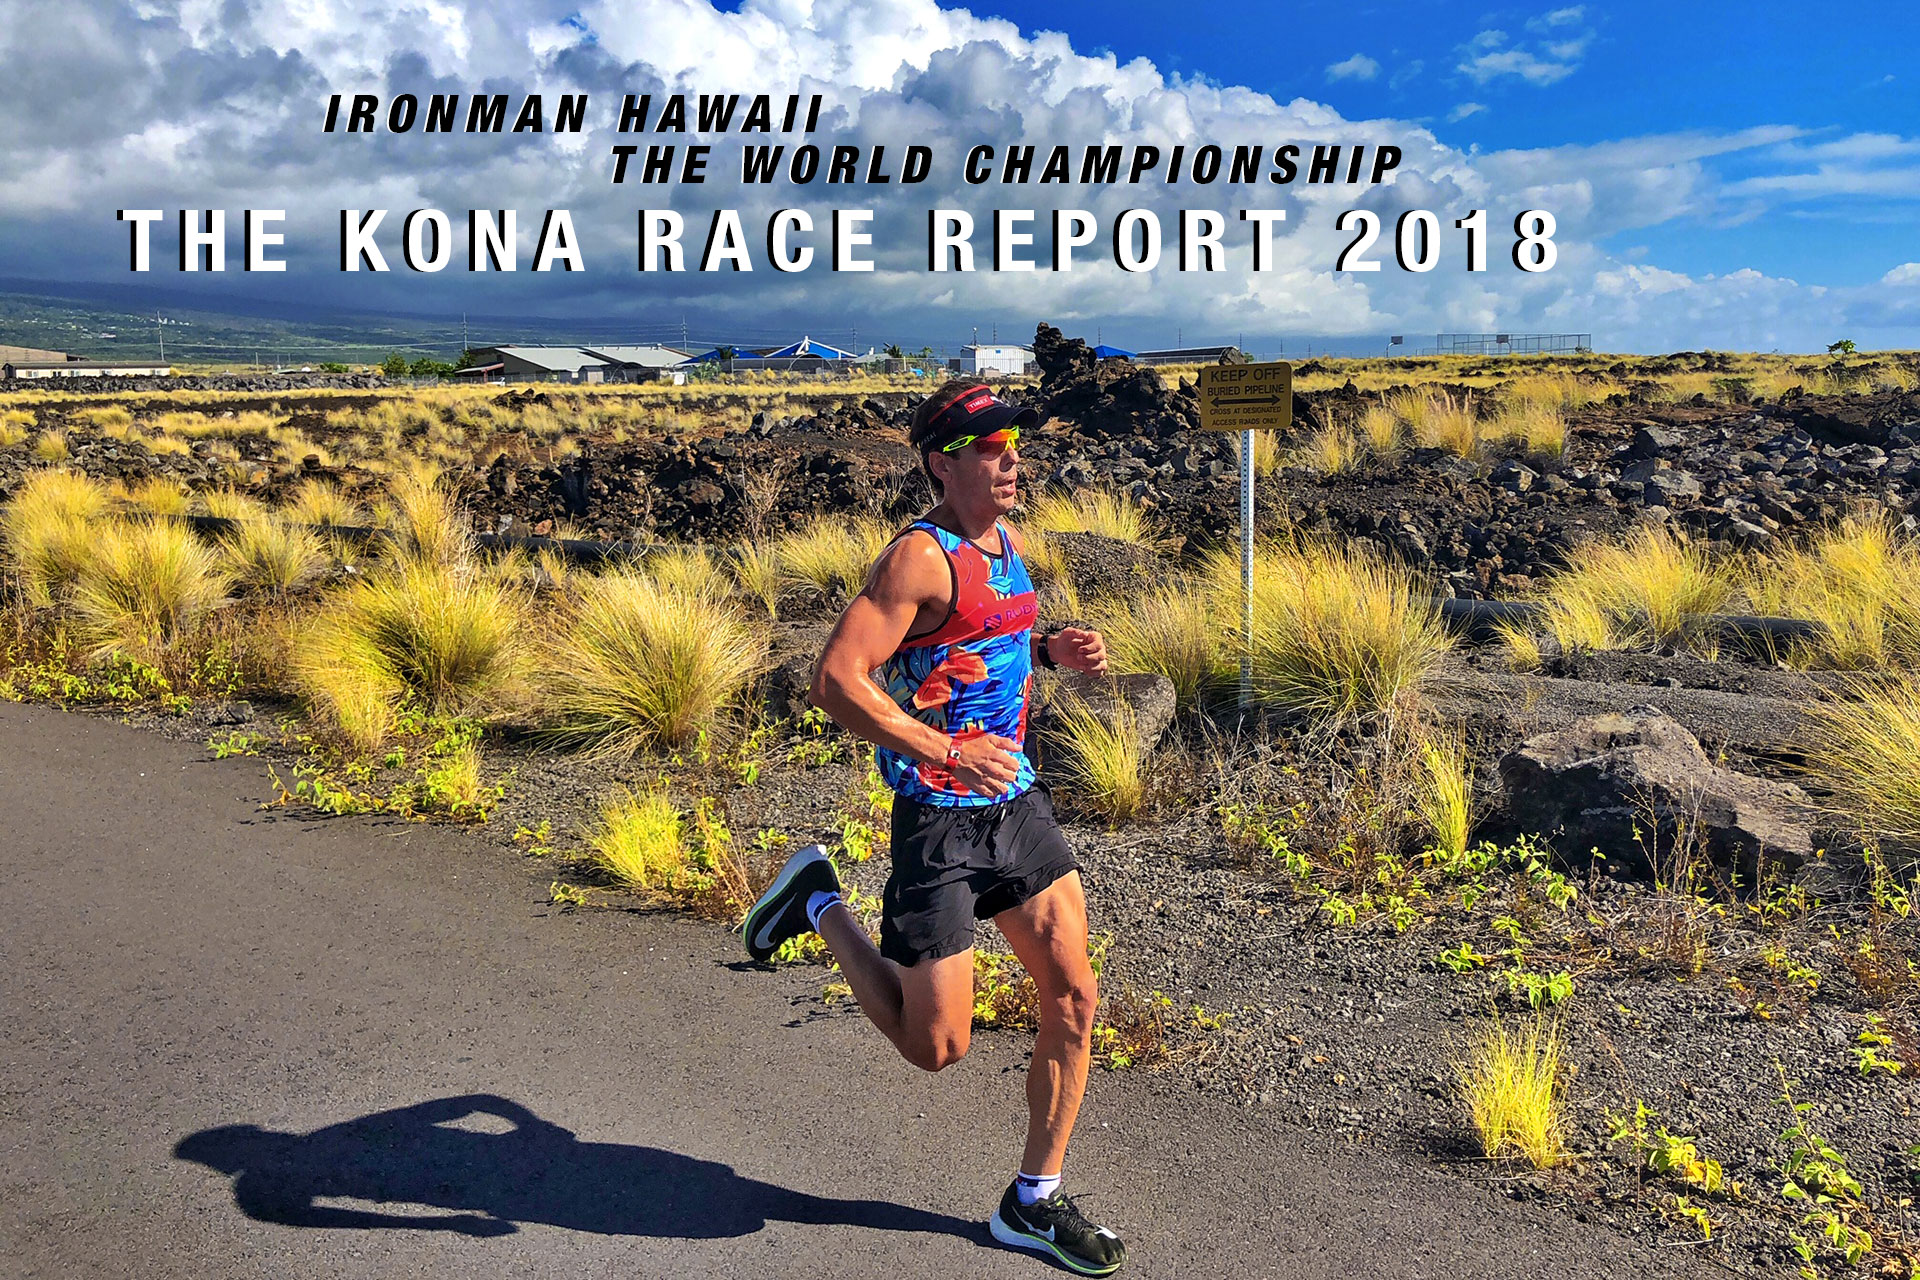 IRONMAN HAWAII 2018 The Kona Race Report 2018 by Klodian Mitri / Running the Energy Lab © Klodian Mitri